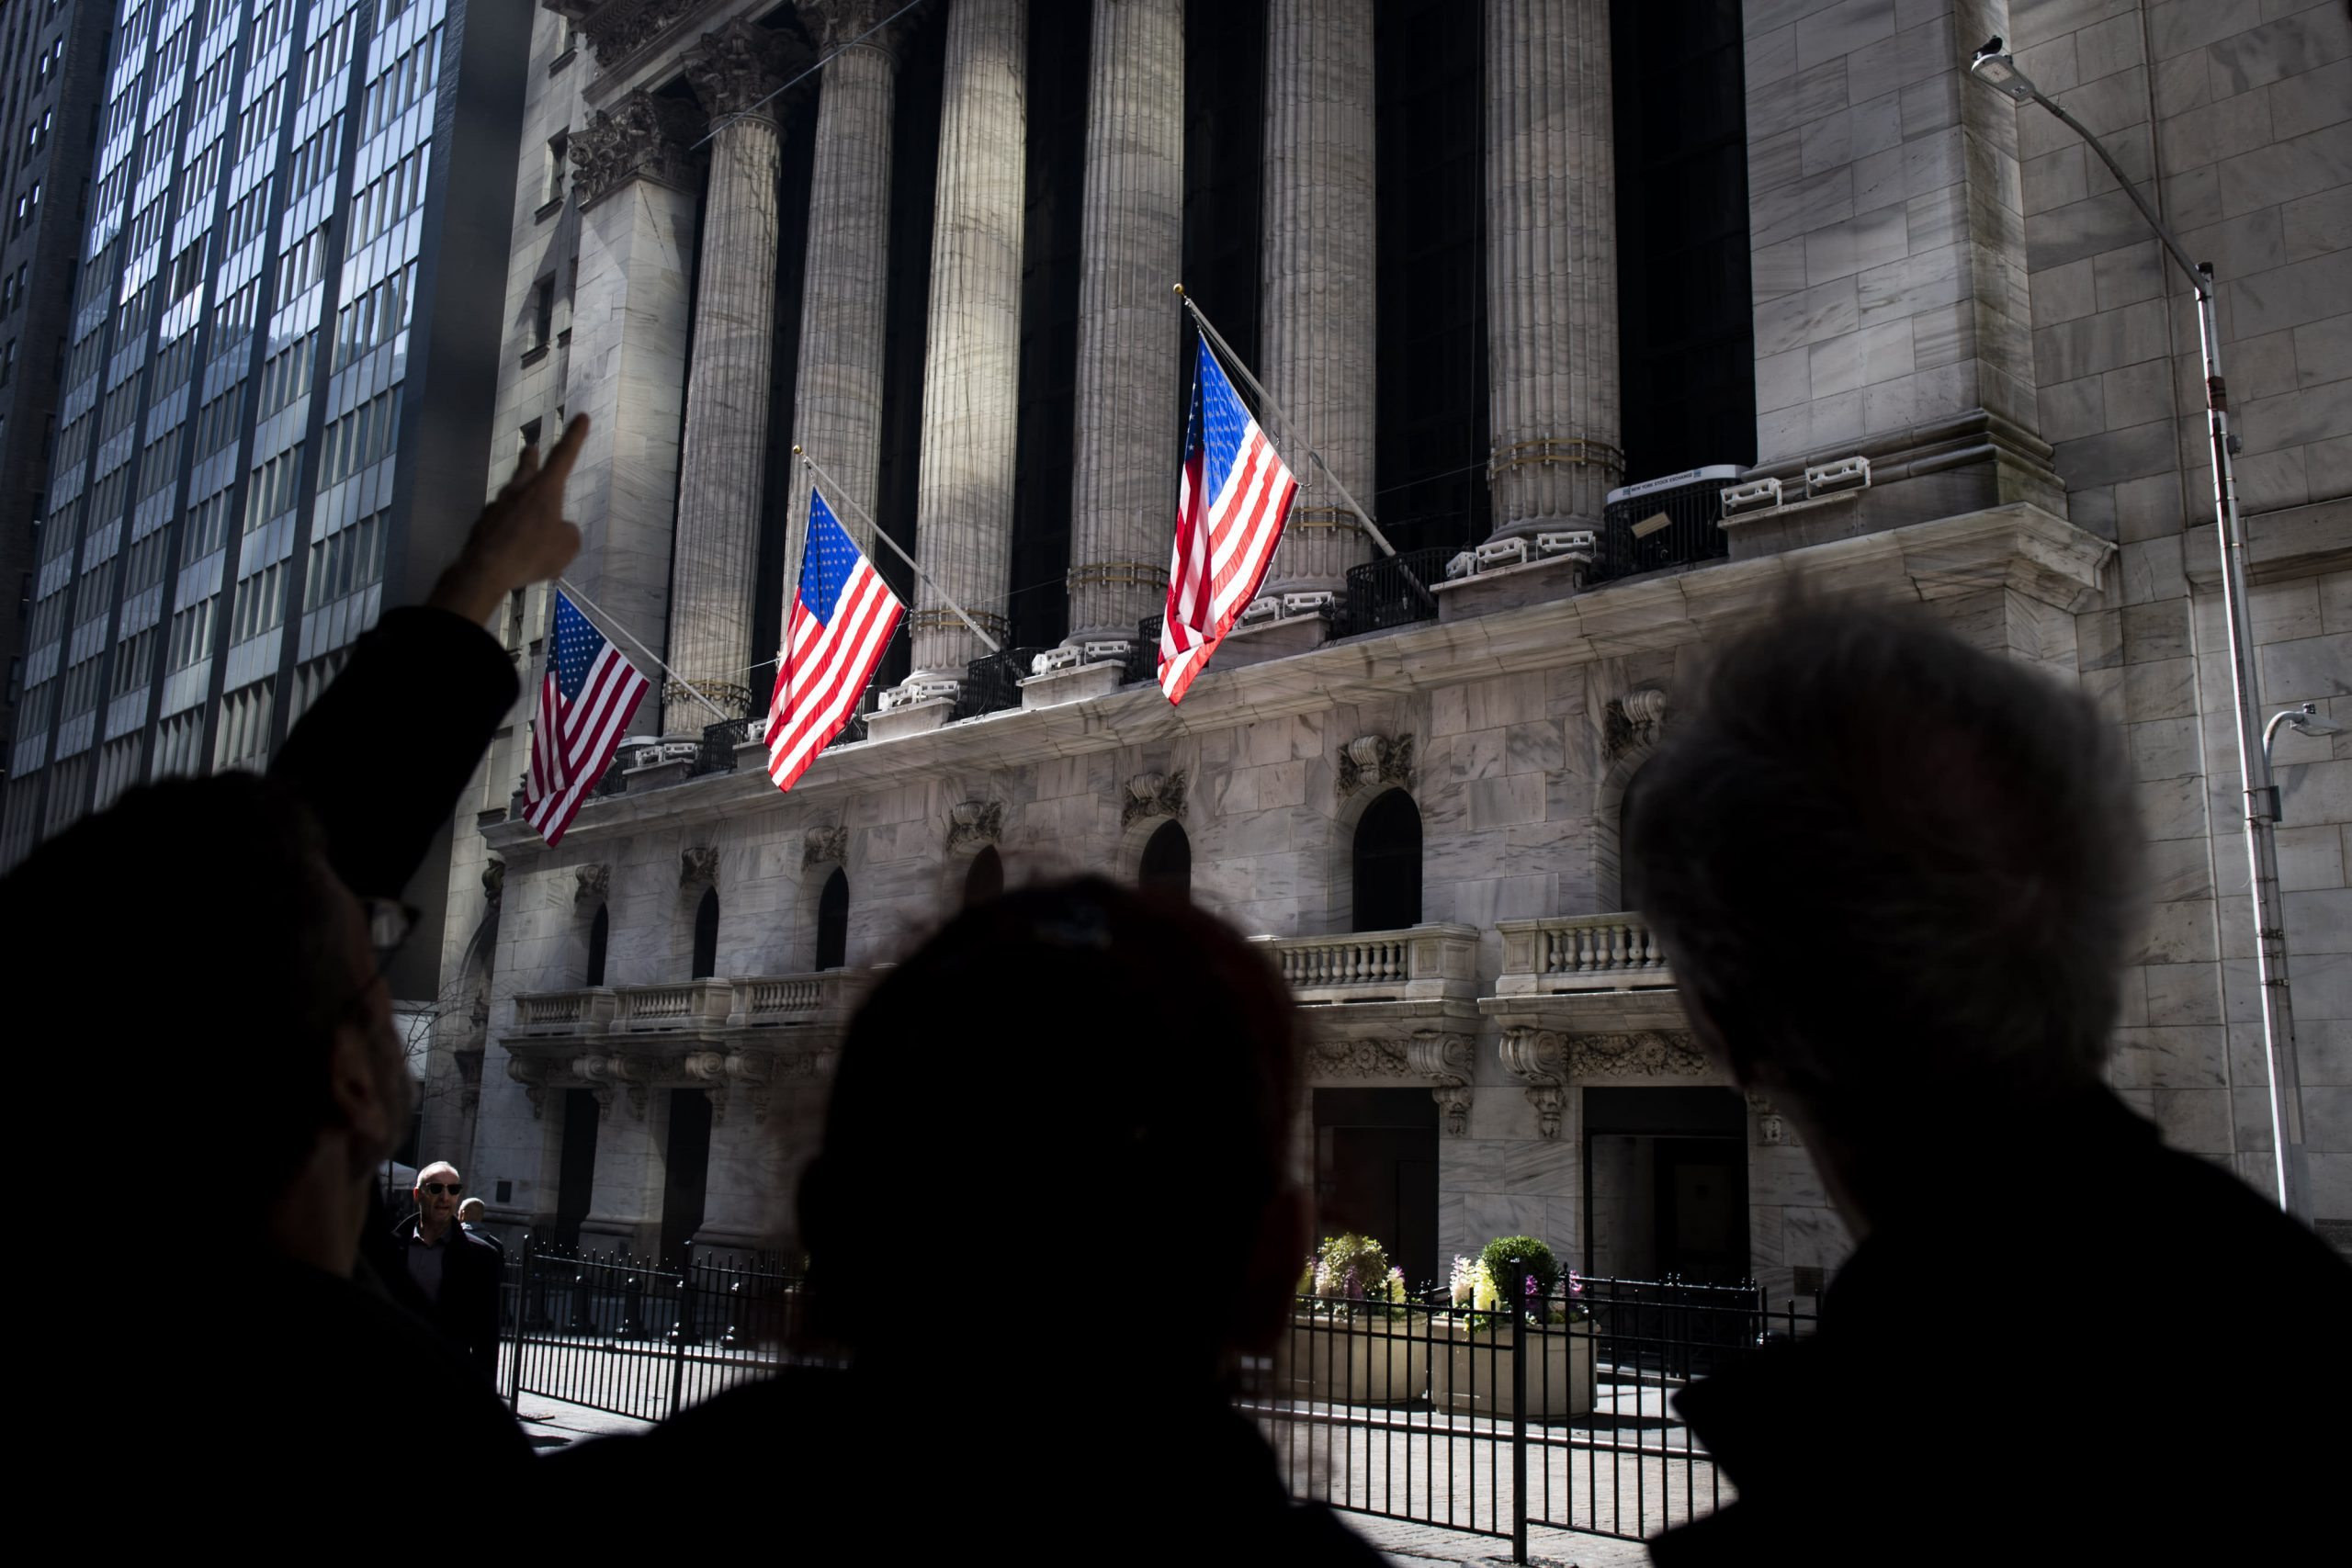 Stock market live updates: Dow futures bounce, oil stabilizes